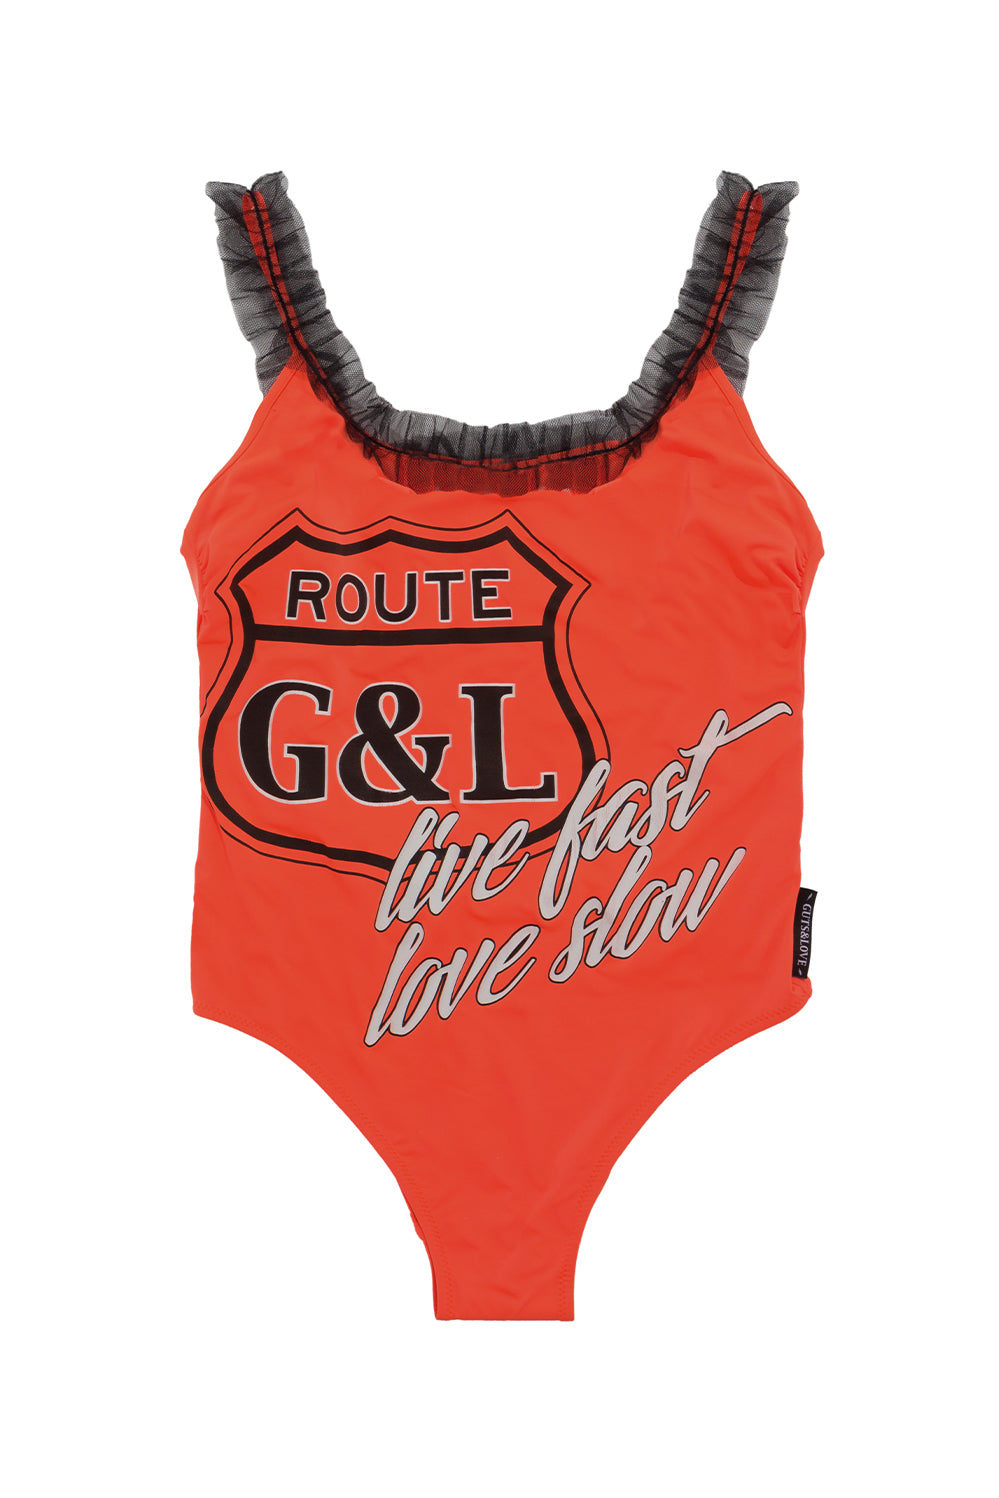 ROUTE G&L LIFEGUARD